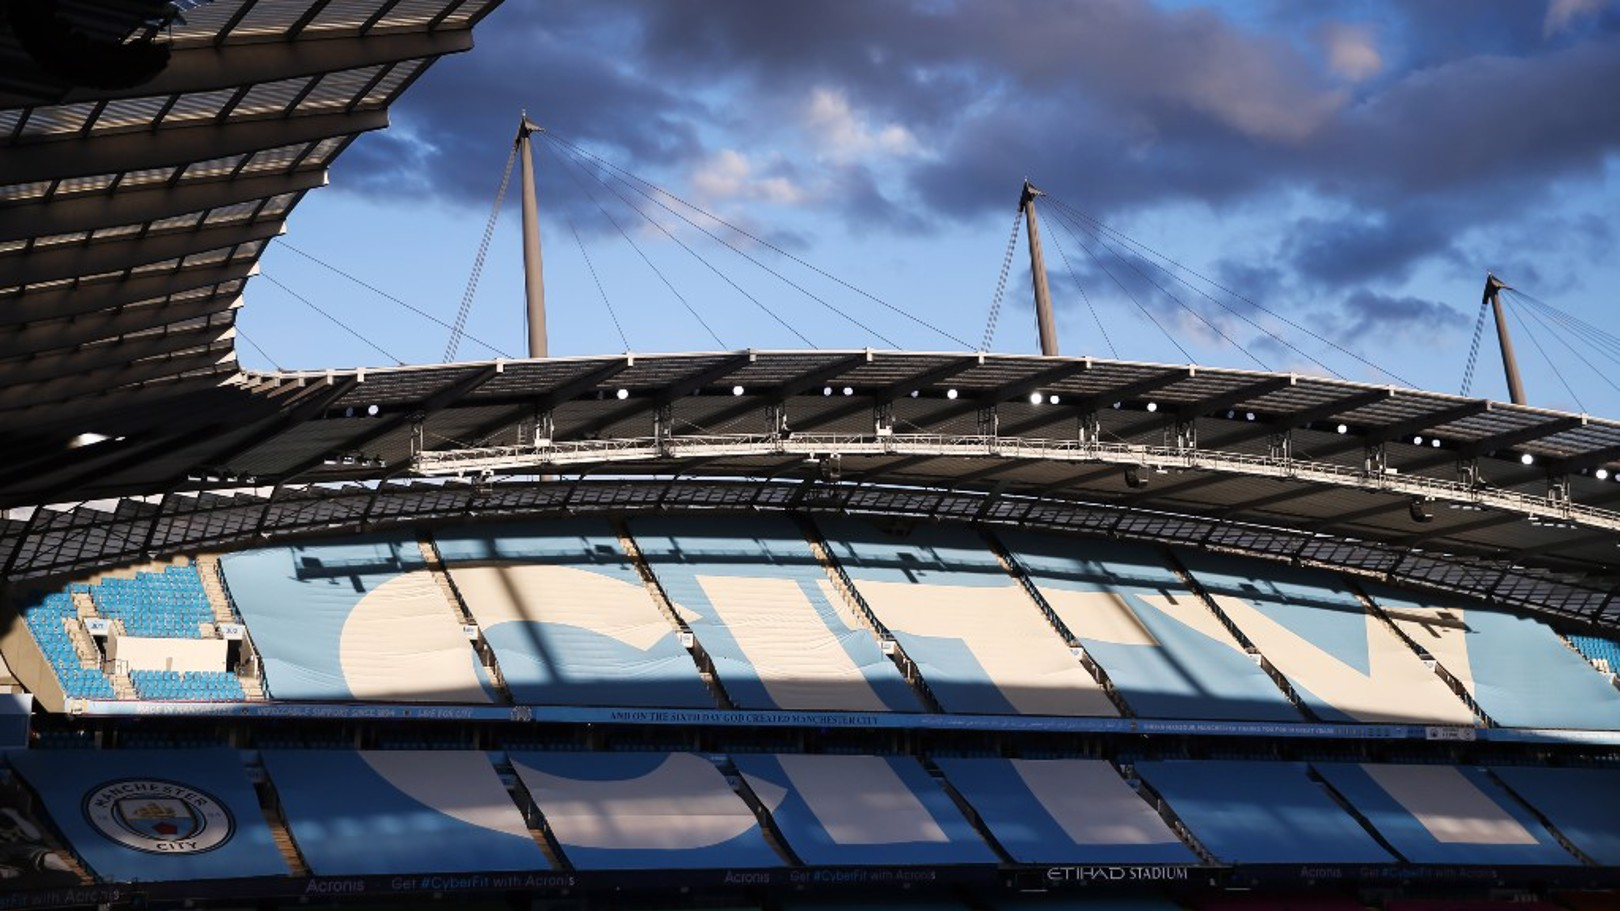 New food and beverage offerings at the Etihad Stadium this season